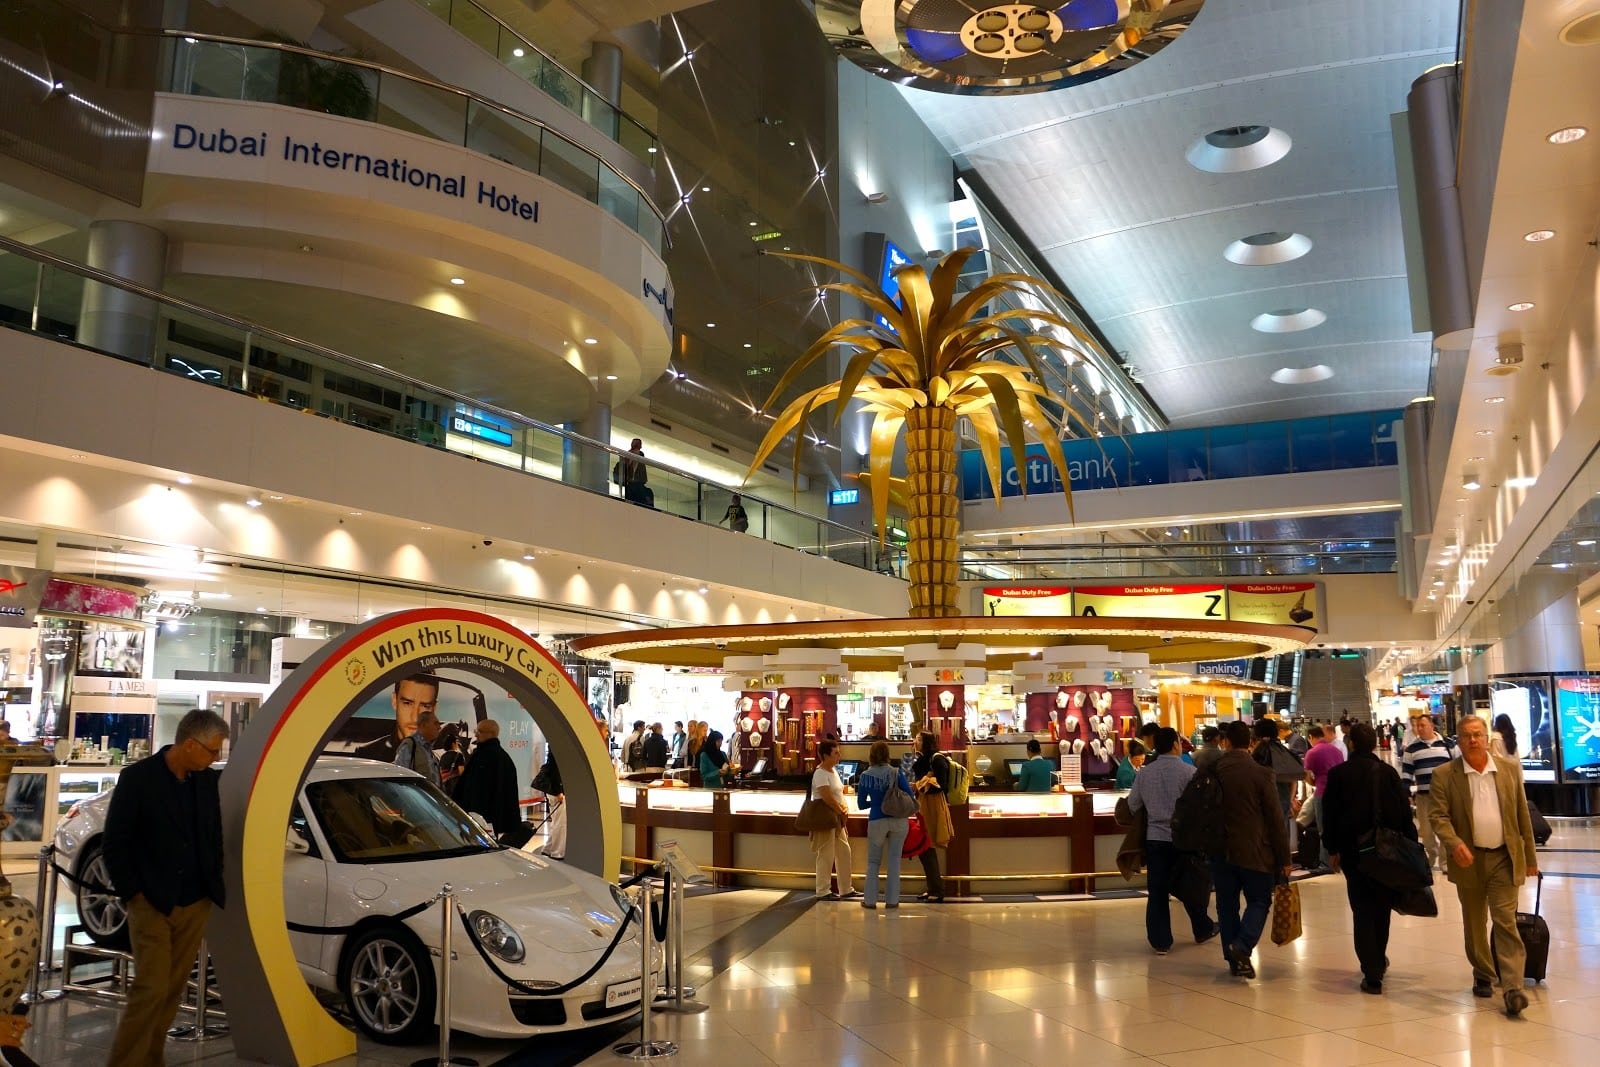 Inside the largest duty-free shop on the planet